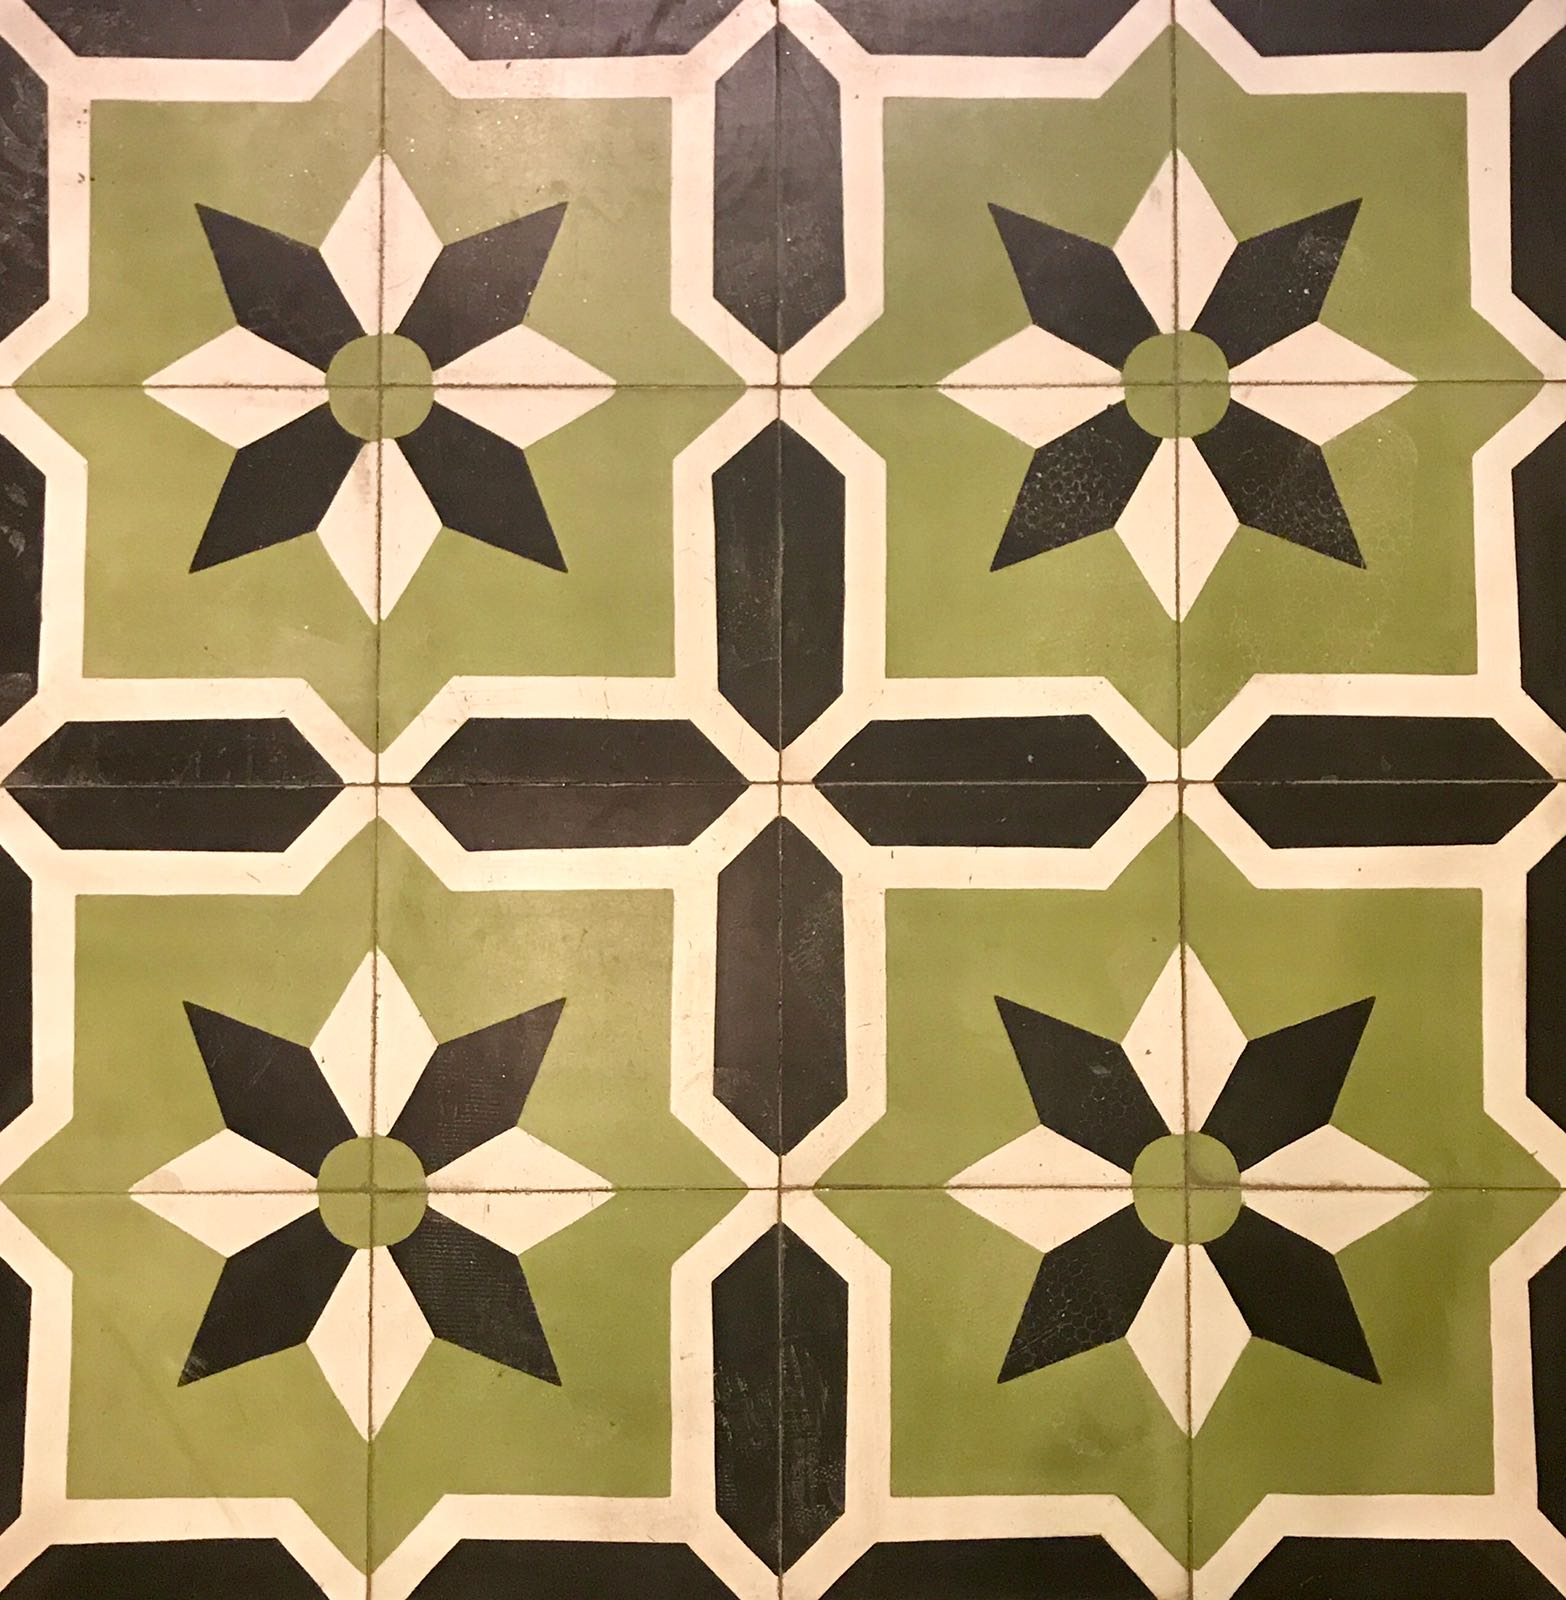 Tiles with a white, light green and dark green geometric pattern